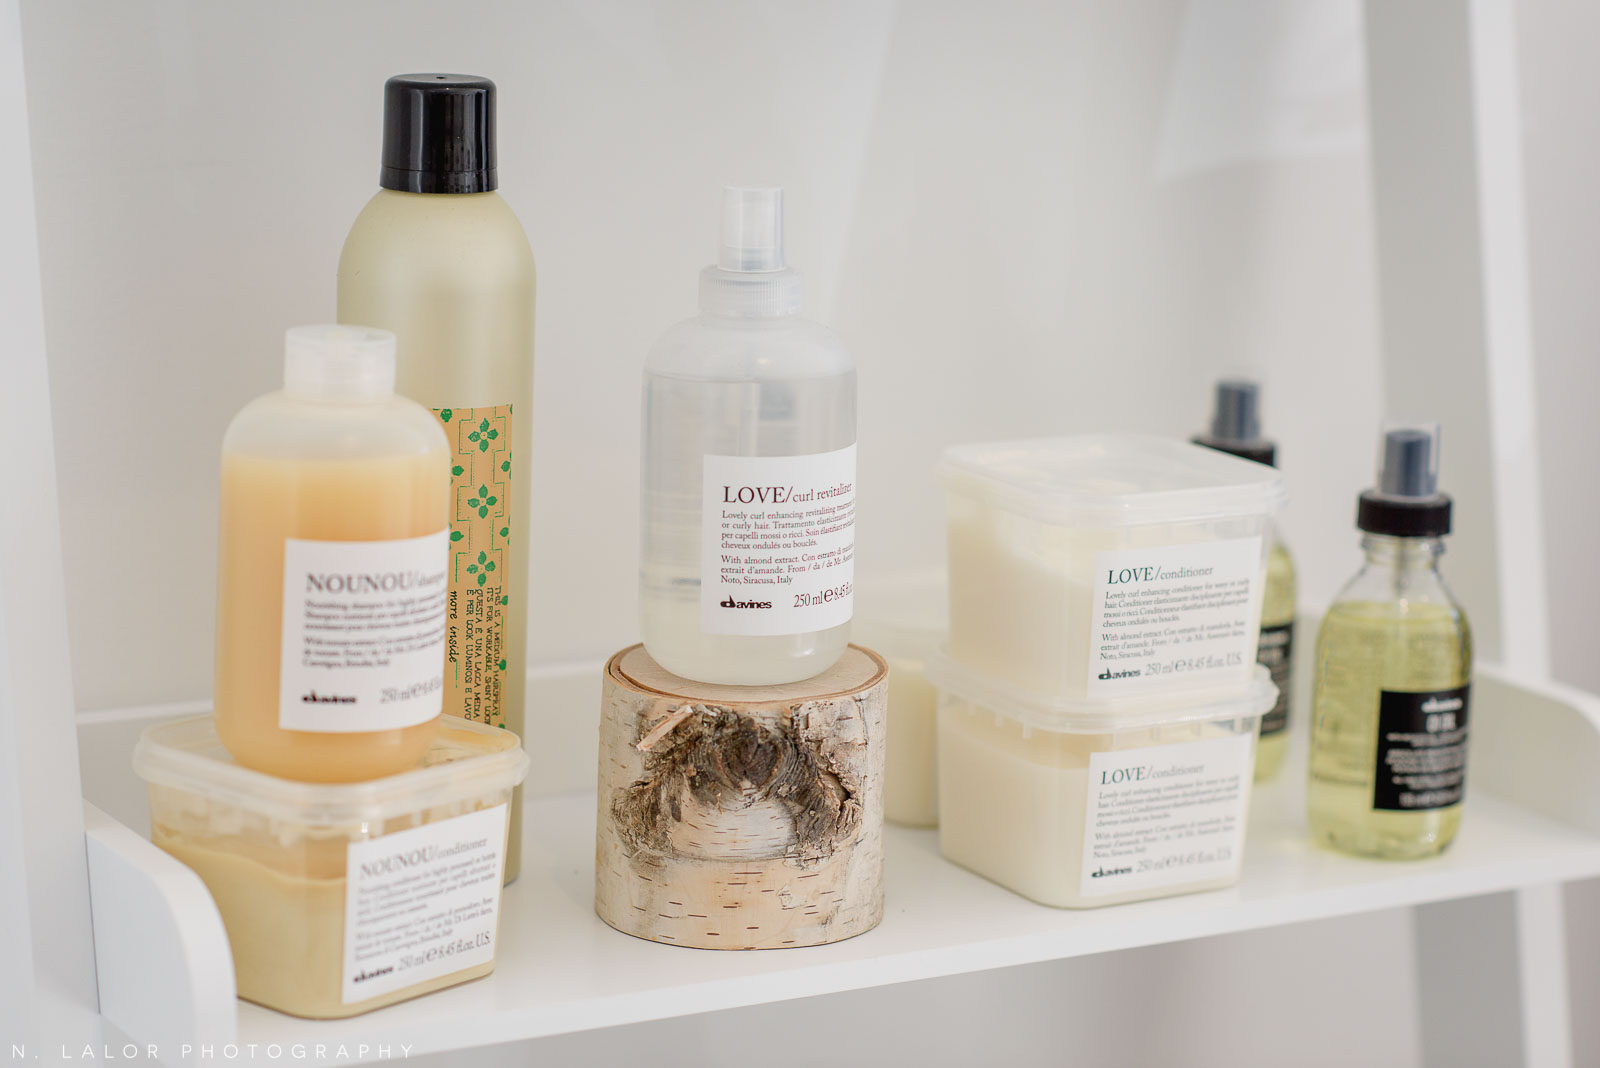 Davines products on display at Haus of Pretty in Westport, CT. Photo by N. Lalor Photography.